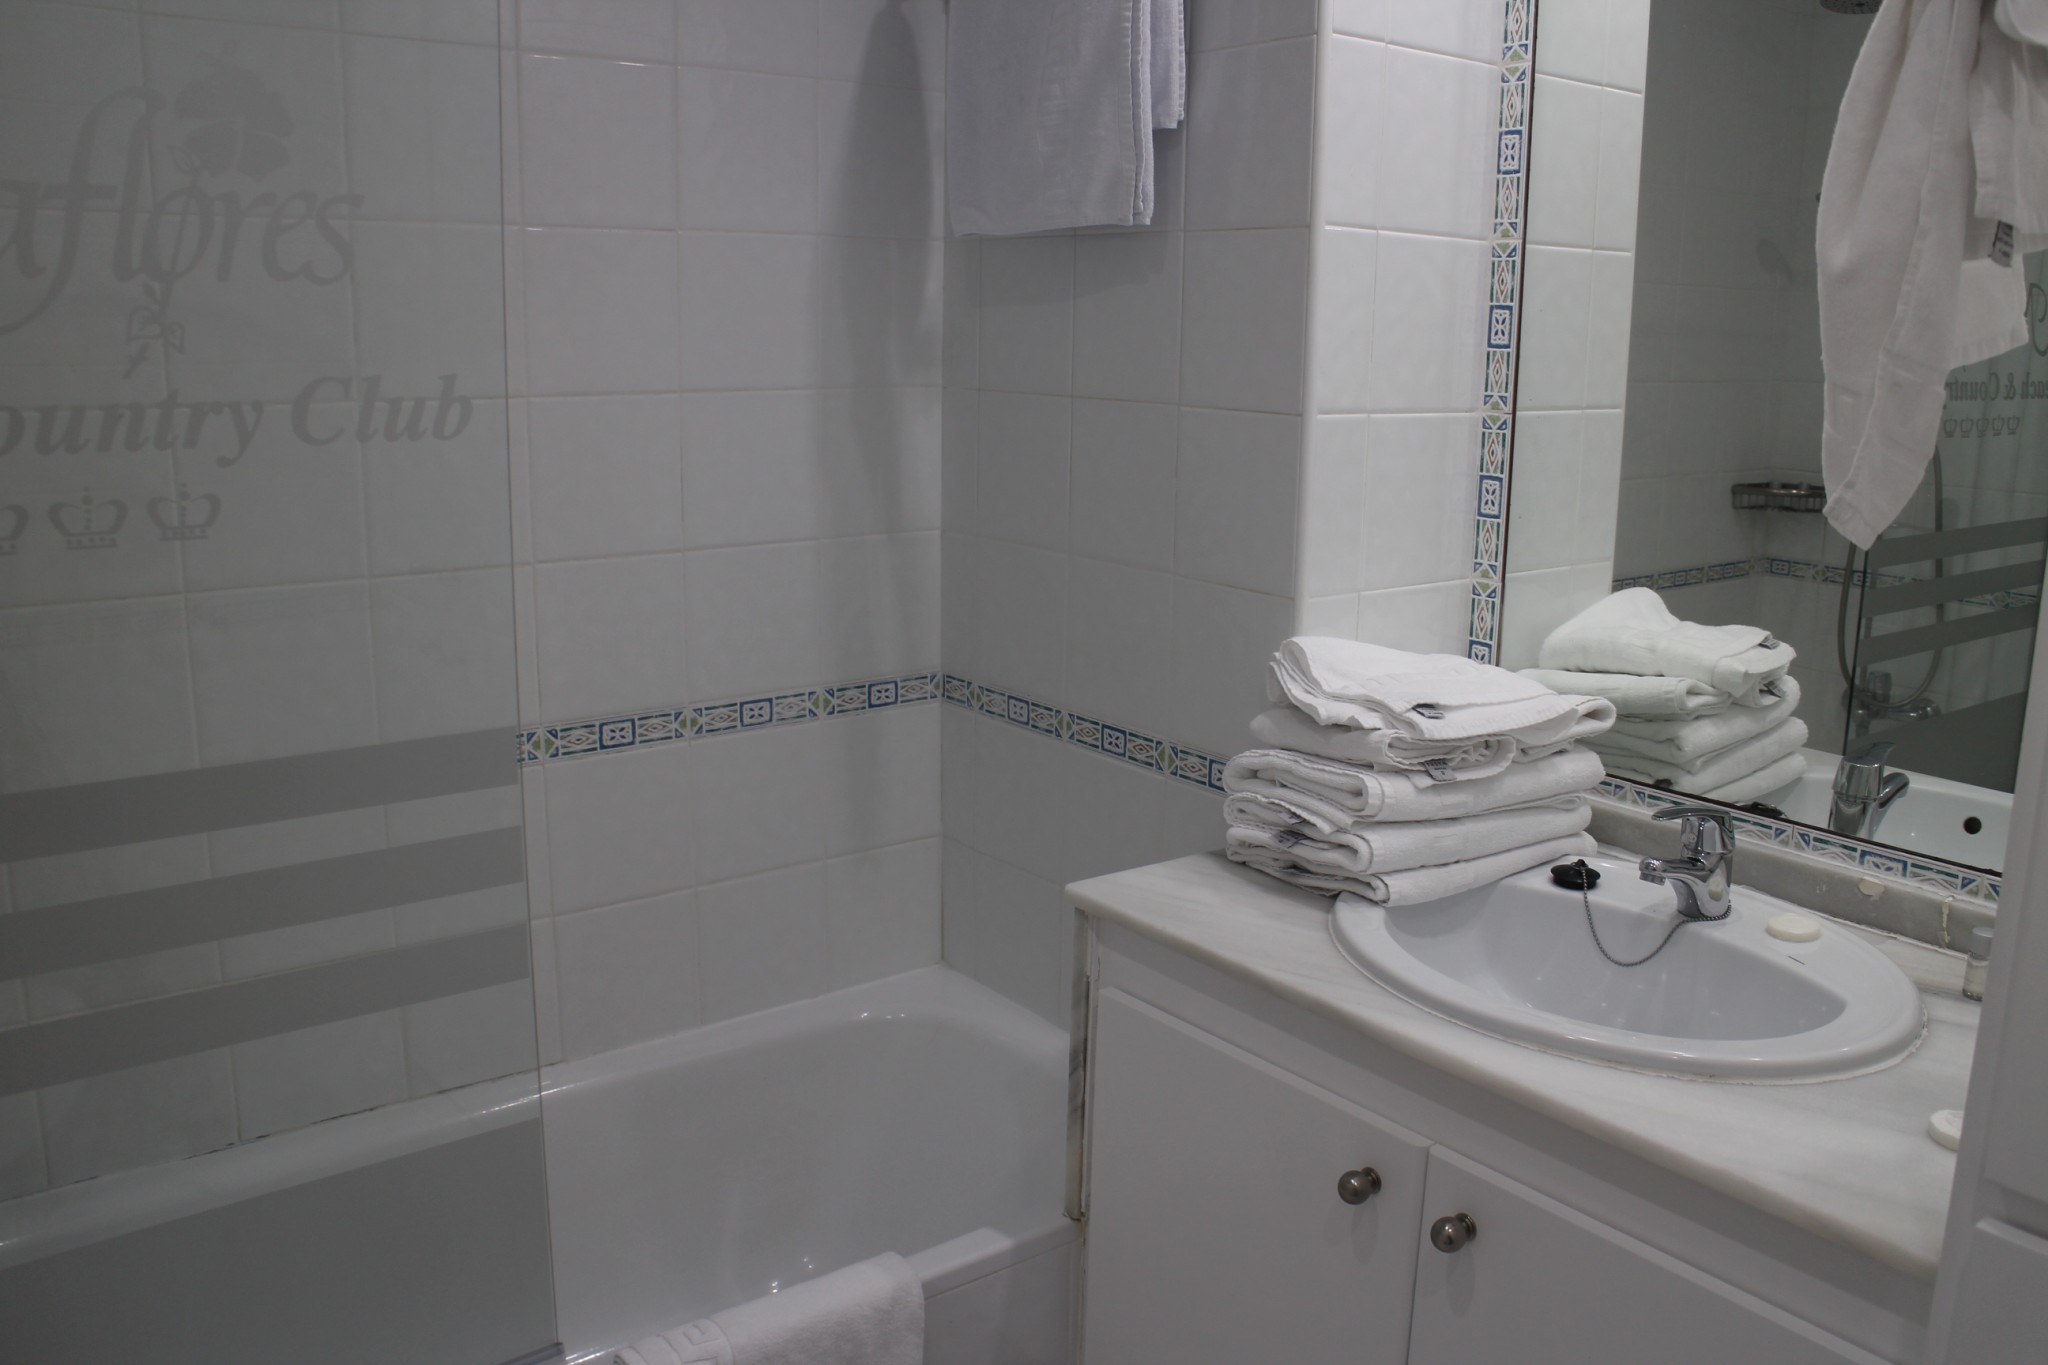 Miraflores Beach & Country Club Bathtub